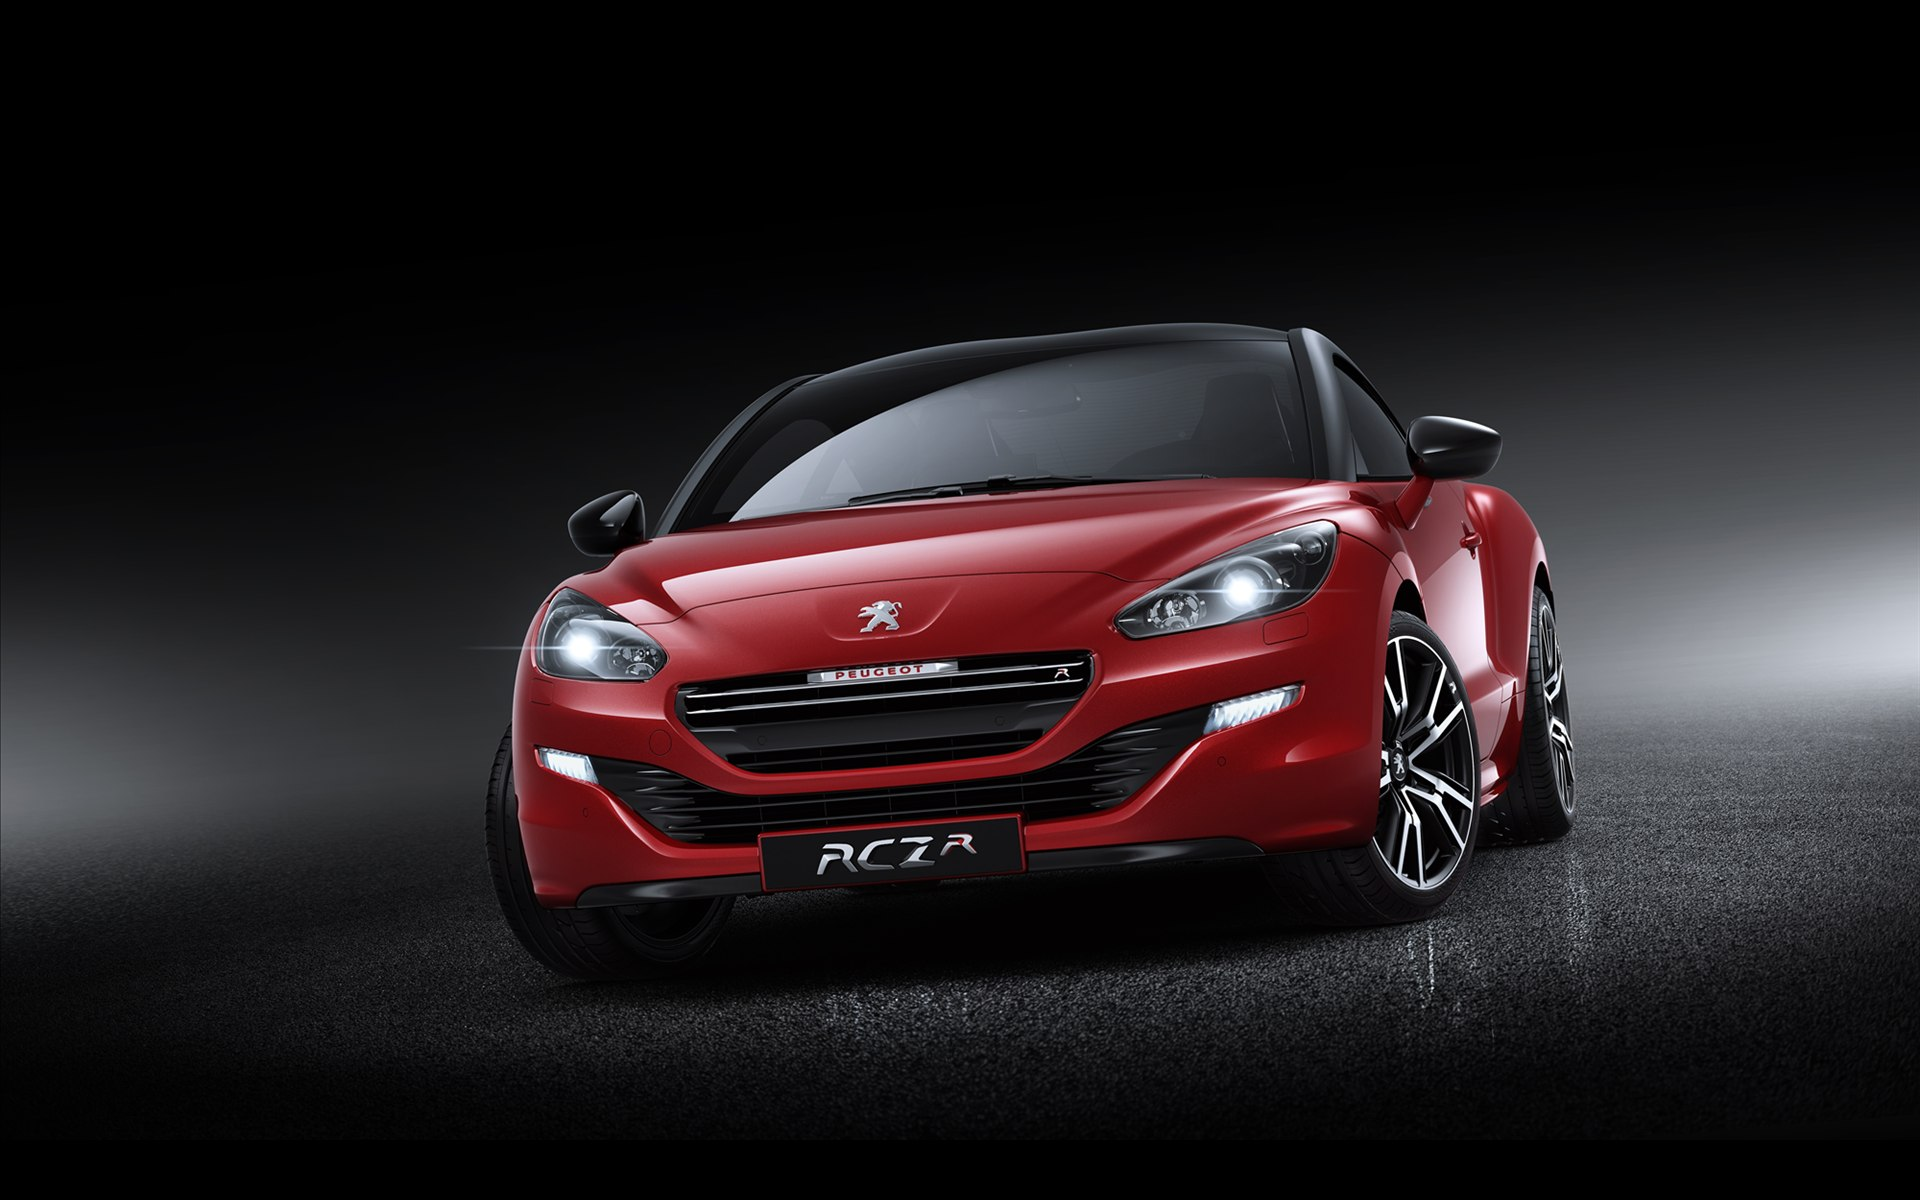 peugeot rcz wallpapers hd full hd pictures. Black Bedroom Furniture Sets. Home Design Ideas